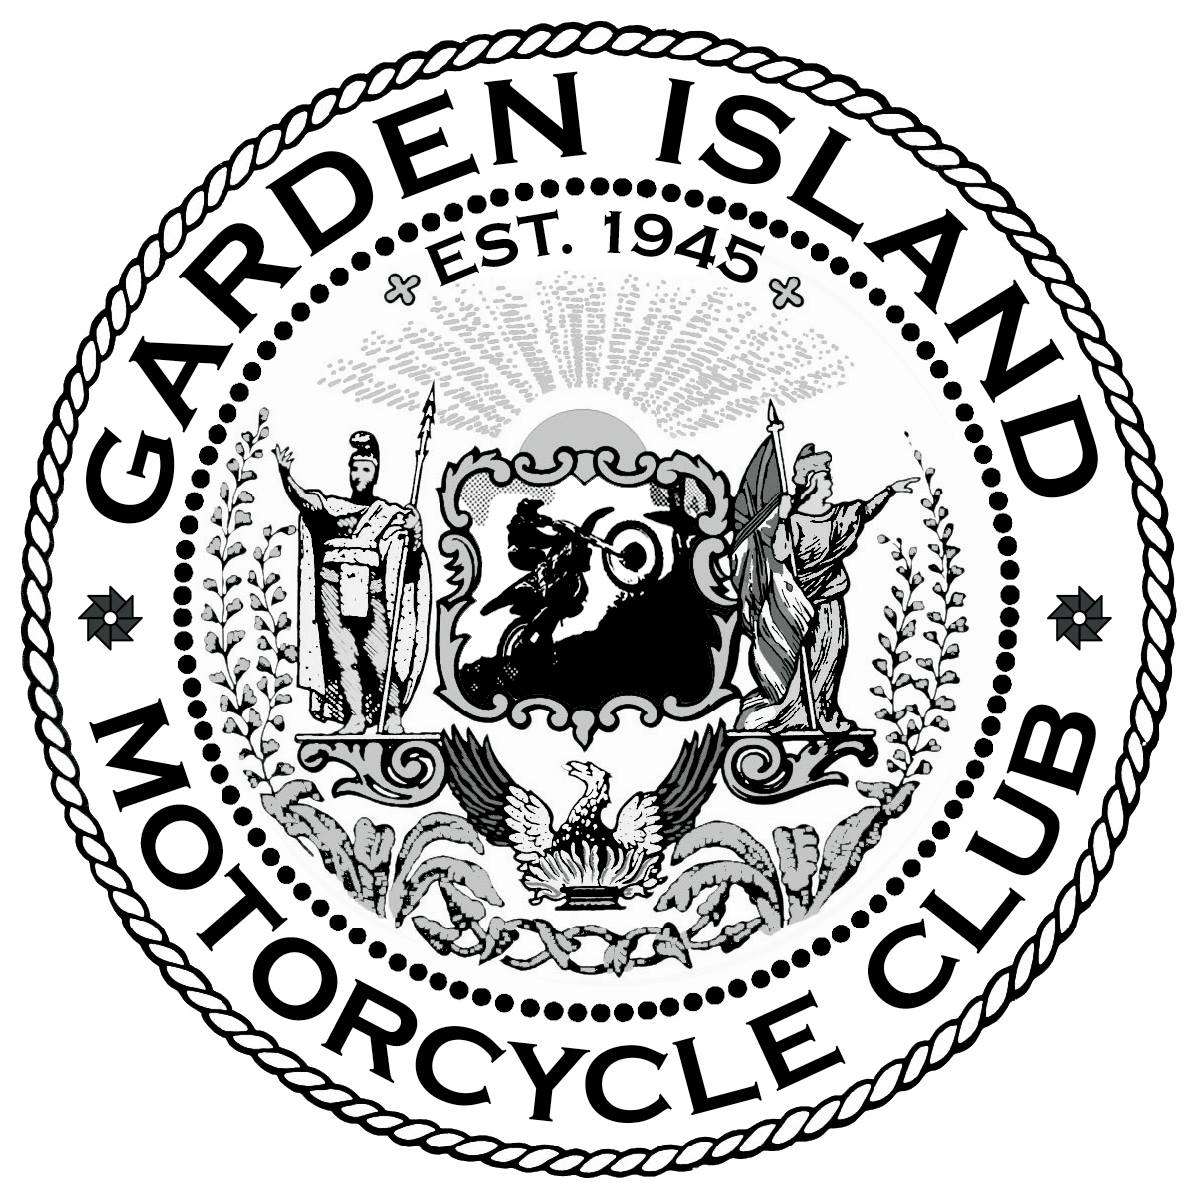 2017 labor day entry forms garden island motorcycle club garden island motorcycle club buycottarizona Choice Image